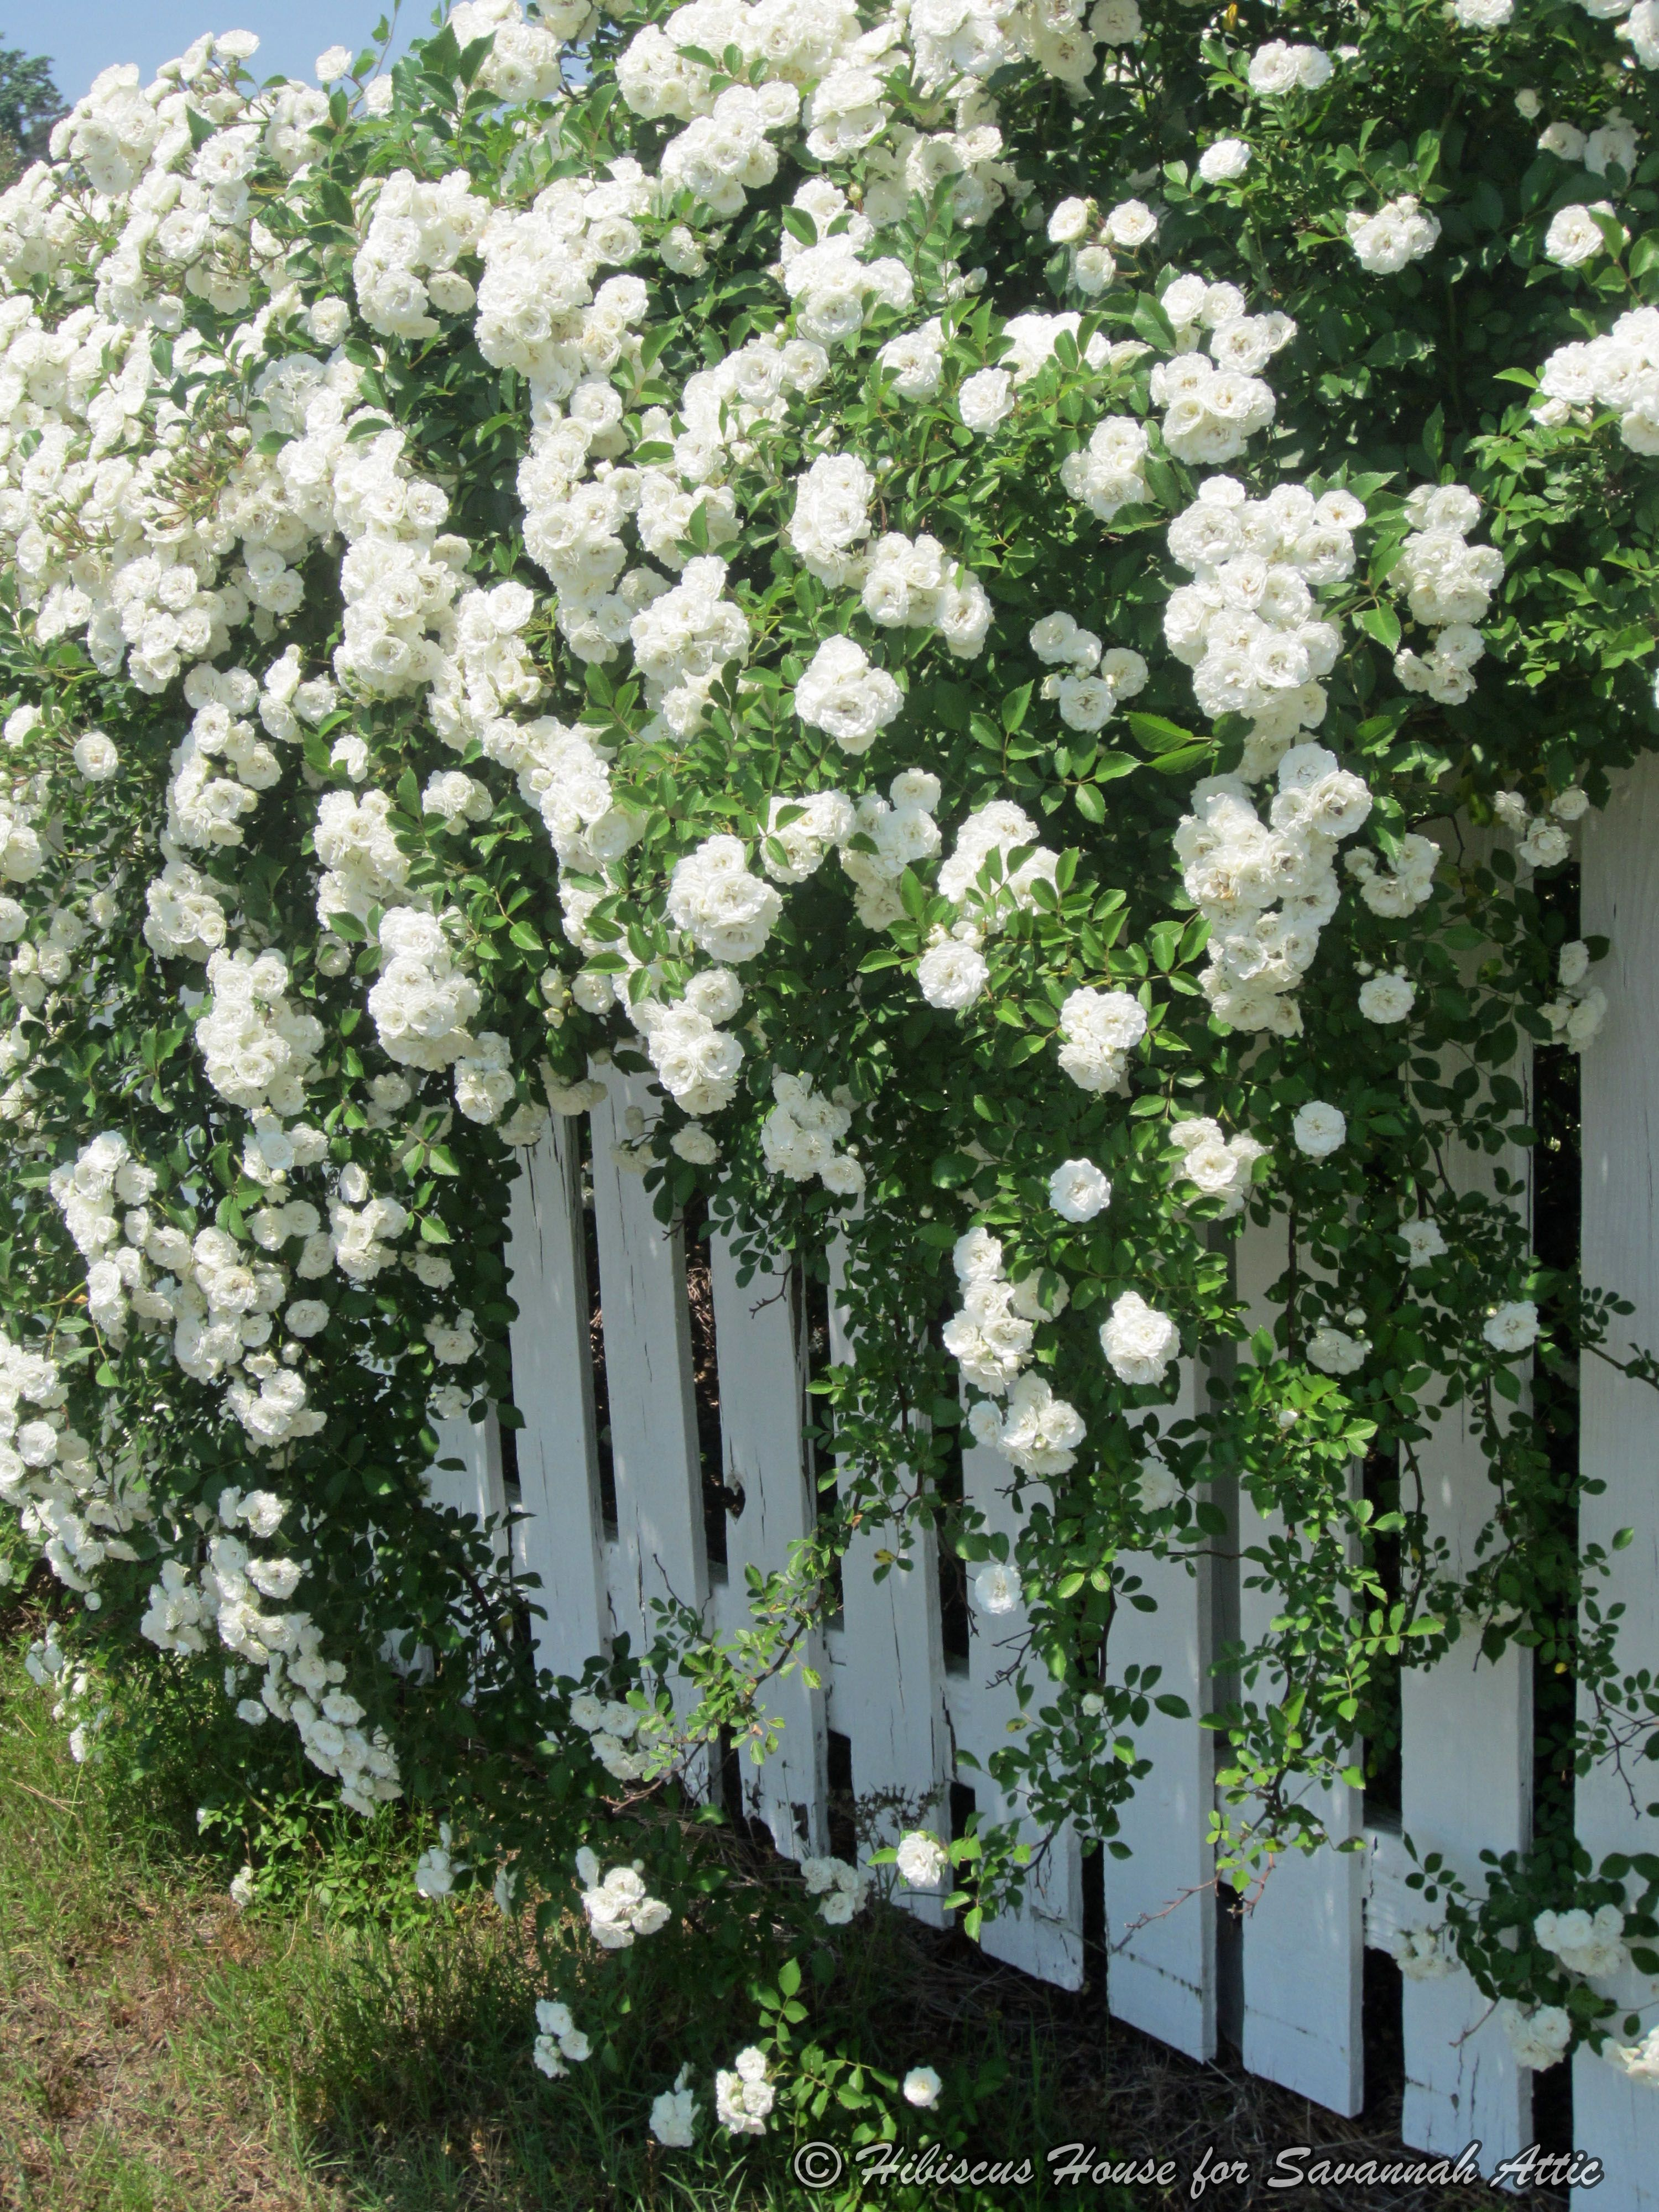 Ho/how to take care of climbing roses for winter - Hibiscus House Climbing Iceberg Roses